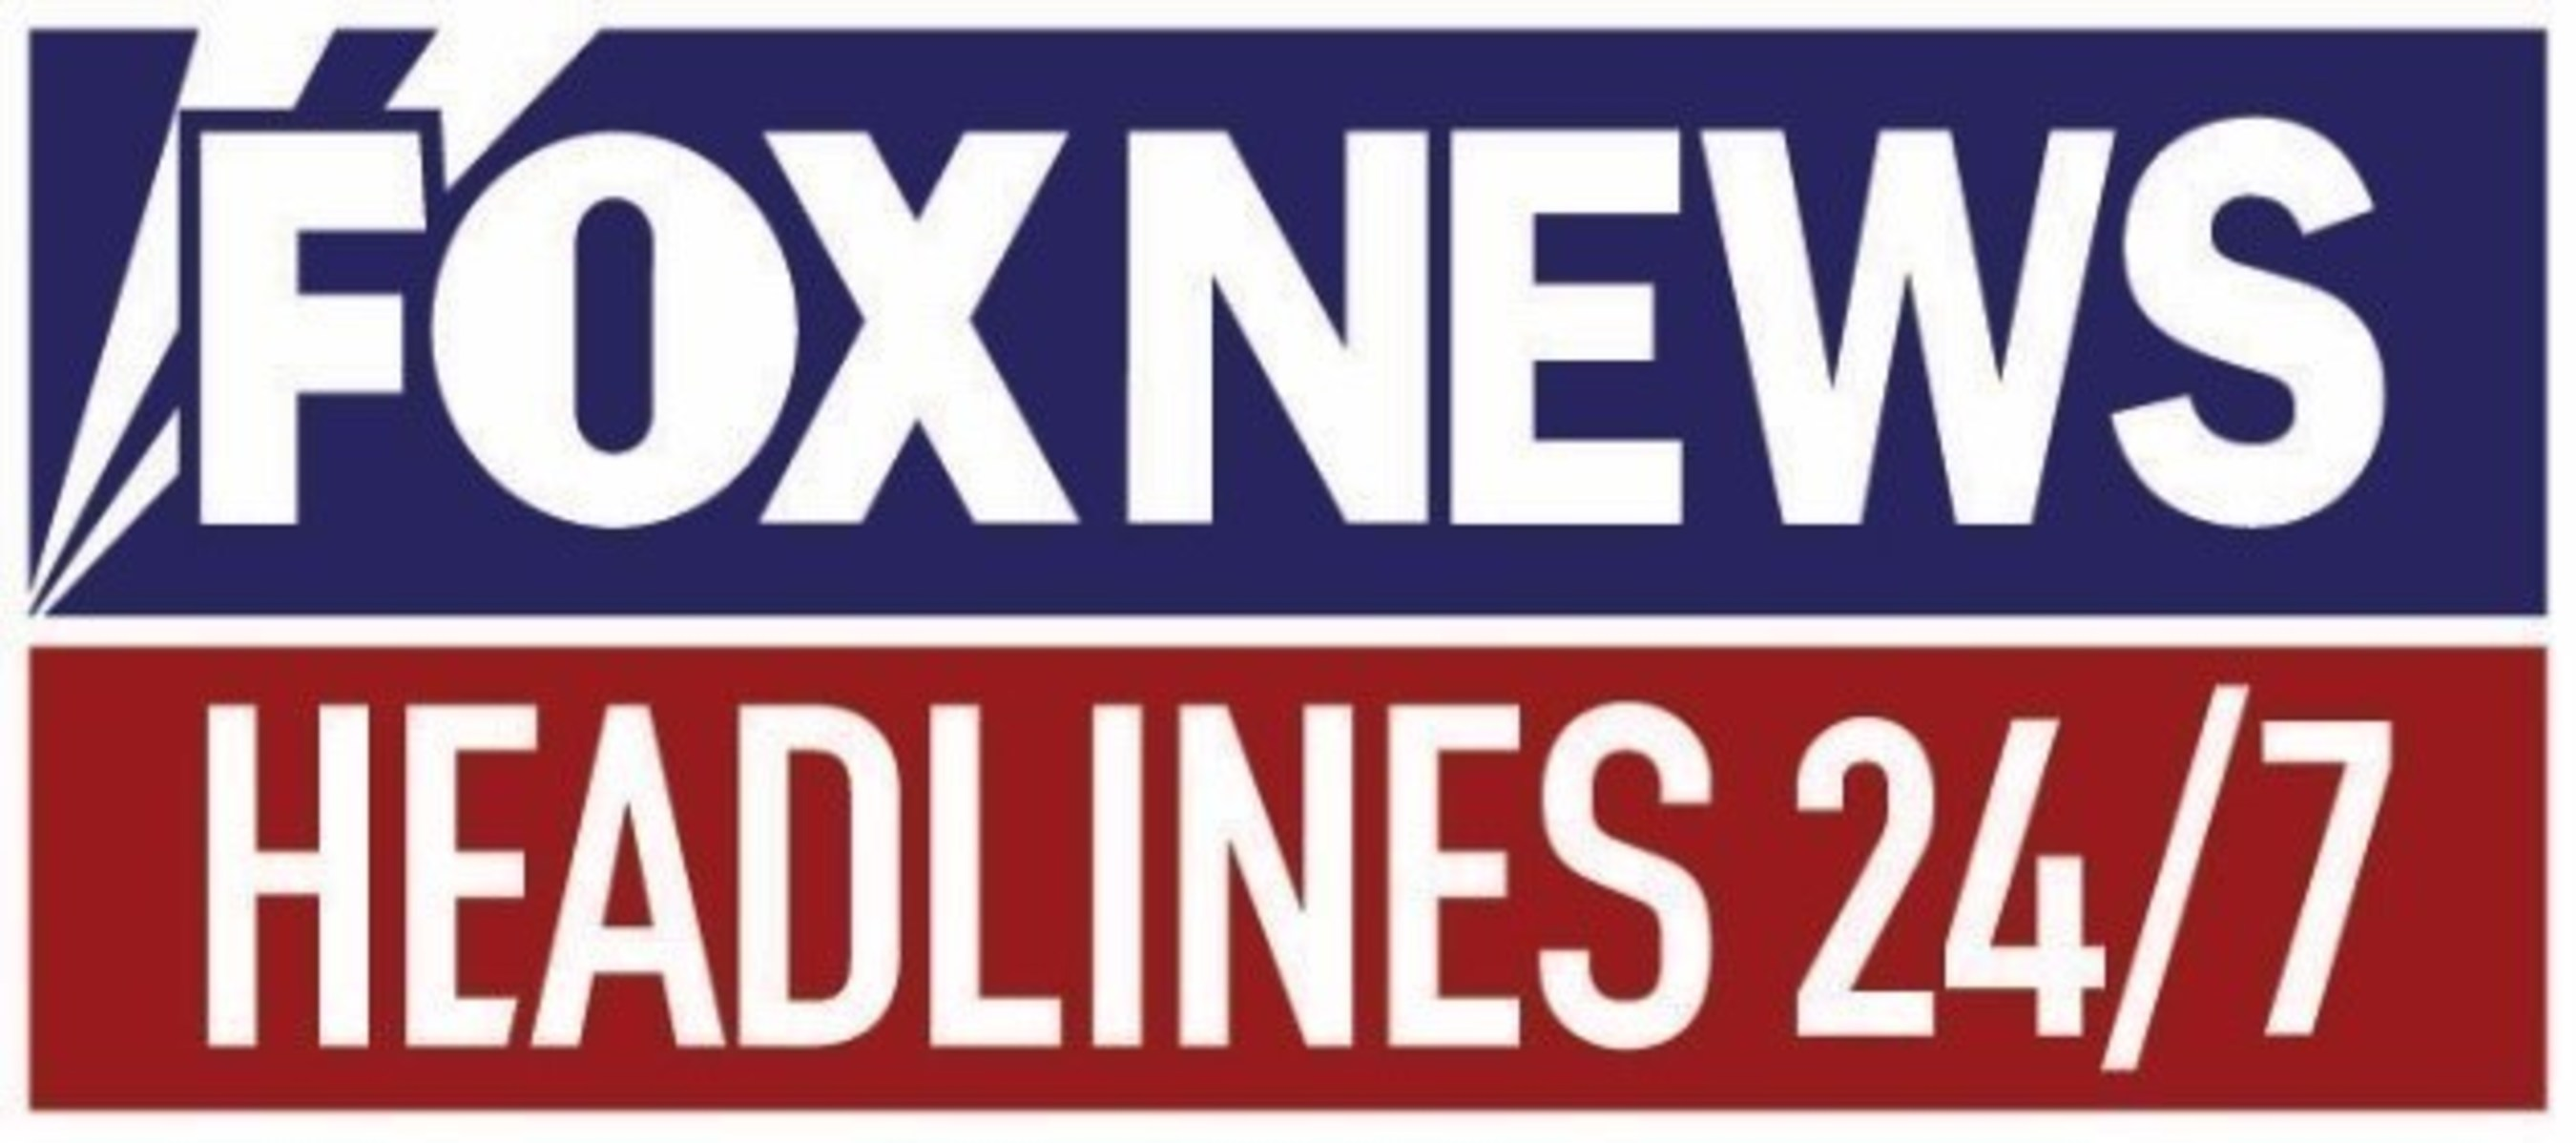 National News Channel FOX News Headlines 24/7 to Debut